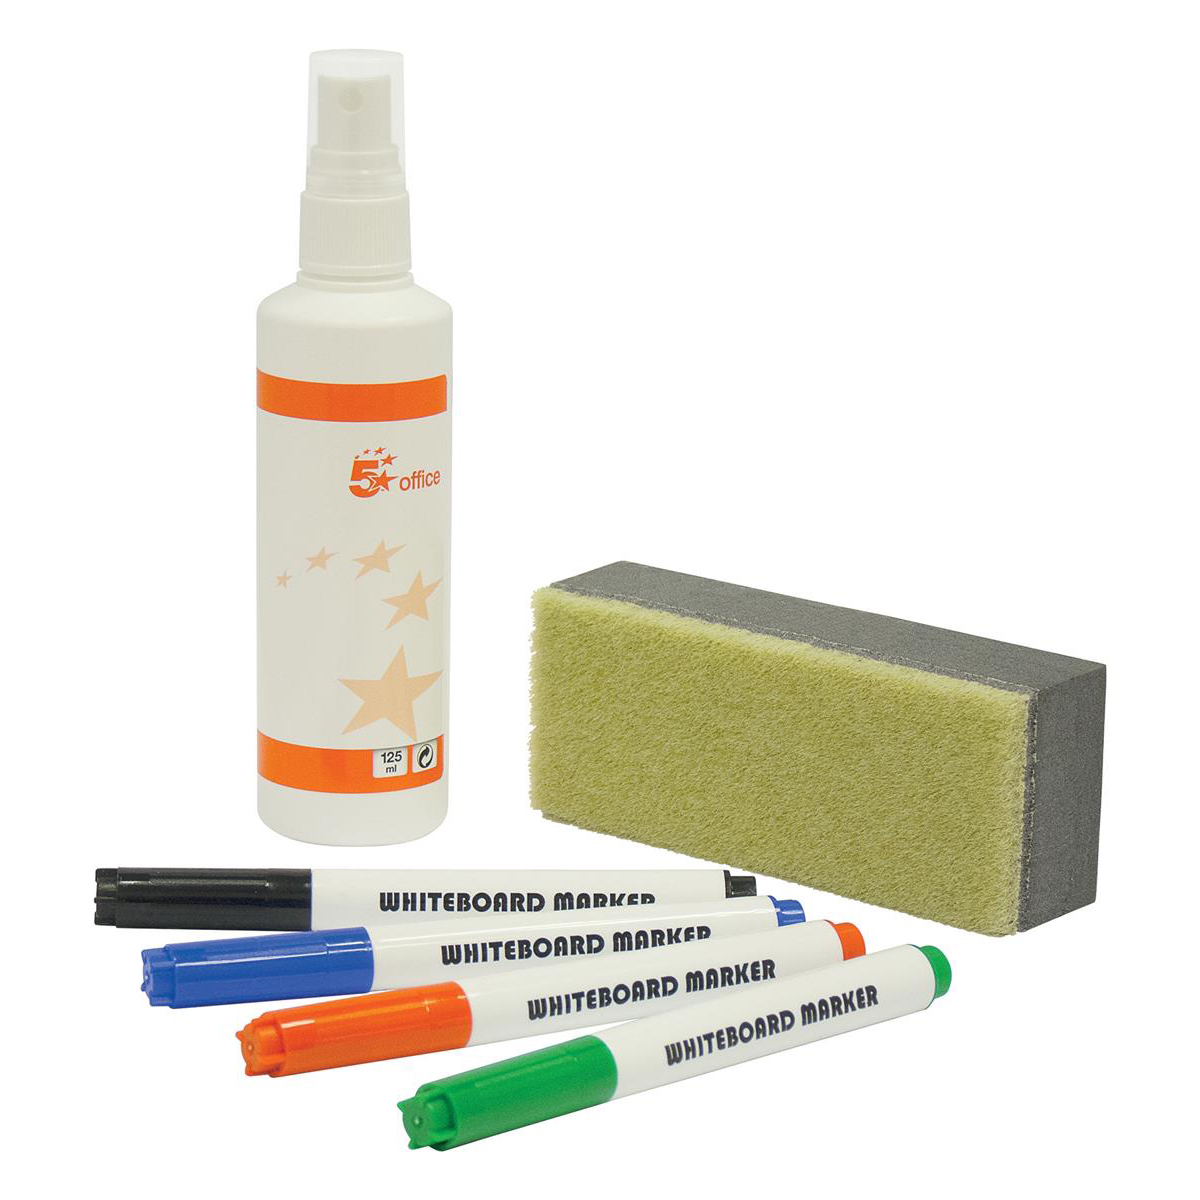 Pen Tray 5 Star Office Drywipe Starter Kit 4 Asst Whiteboard Markers/Eraser/125ml Whiteboard Cleaning Fluid Spray